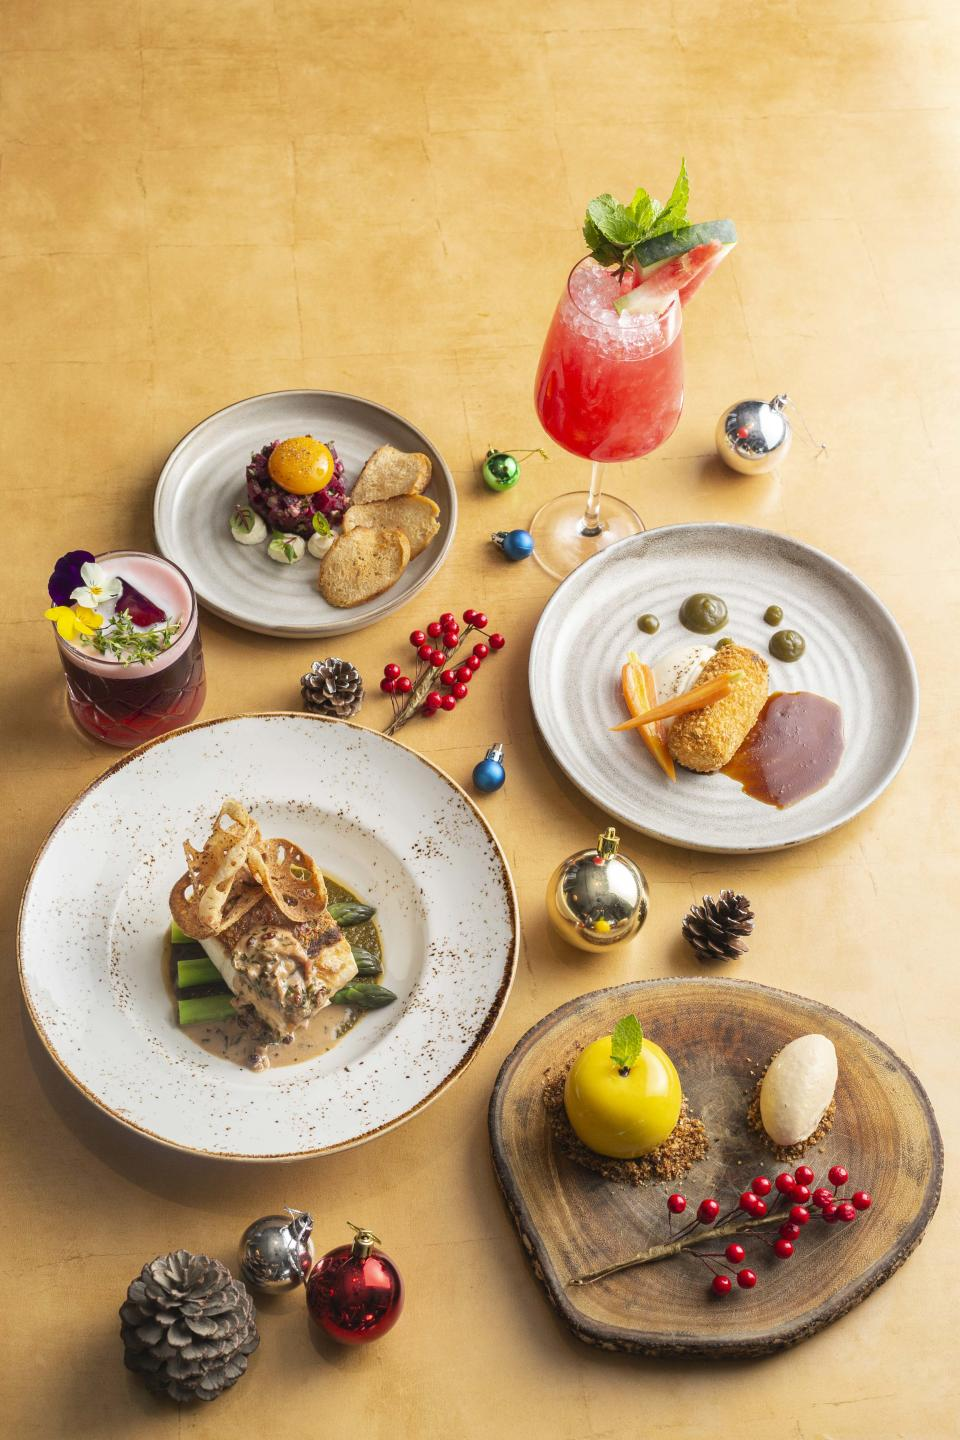 The Festive menu at Bread Street Kitchen. (PHOTO: Marina Bay Sands)